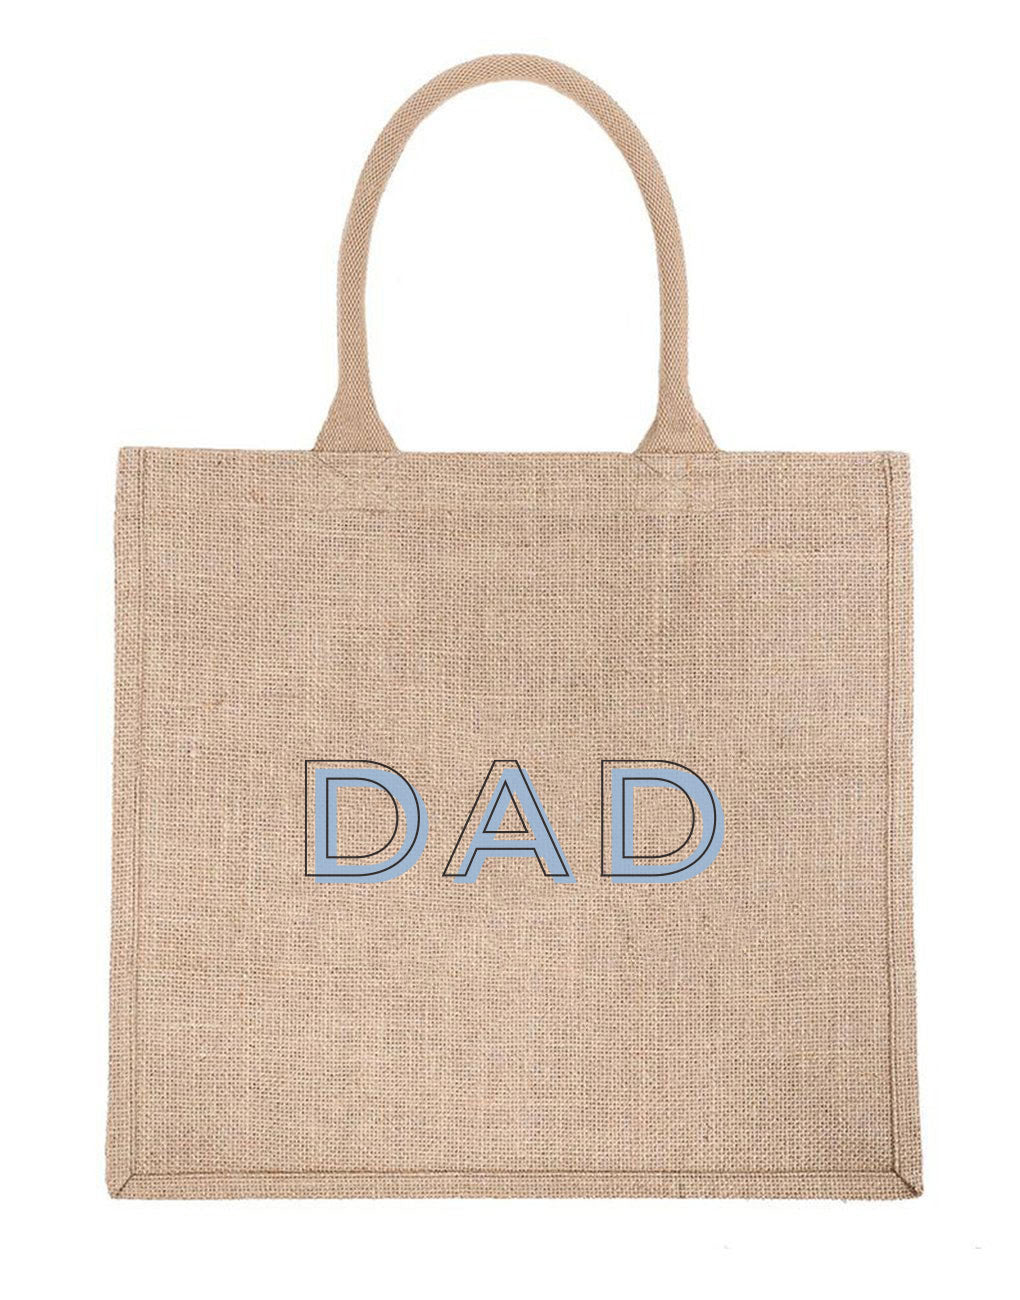 Shopping Tote - Dad | The Little Market